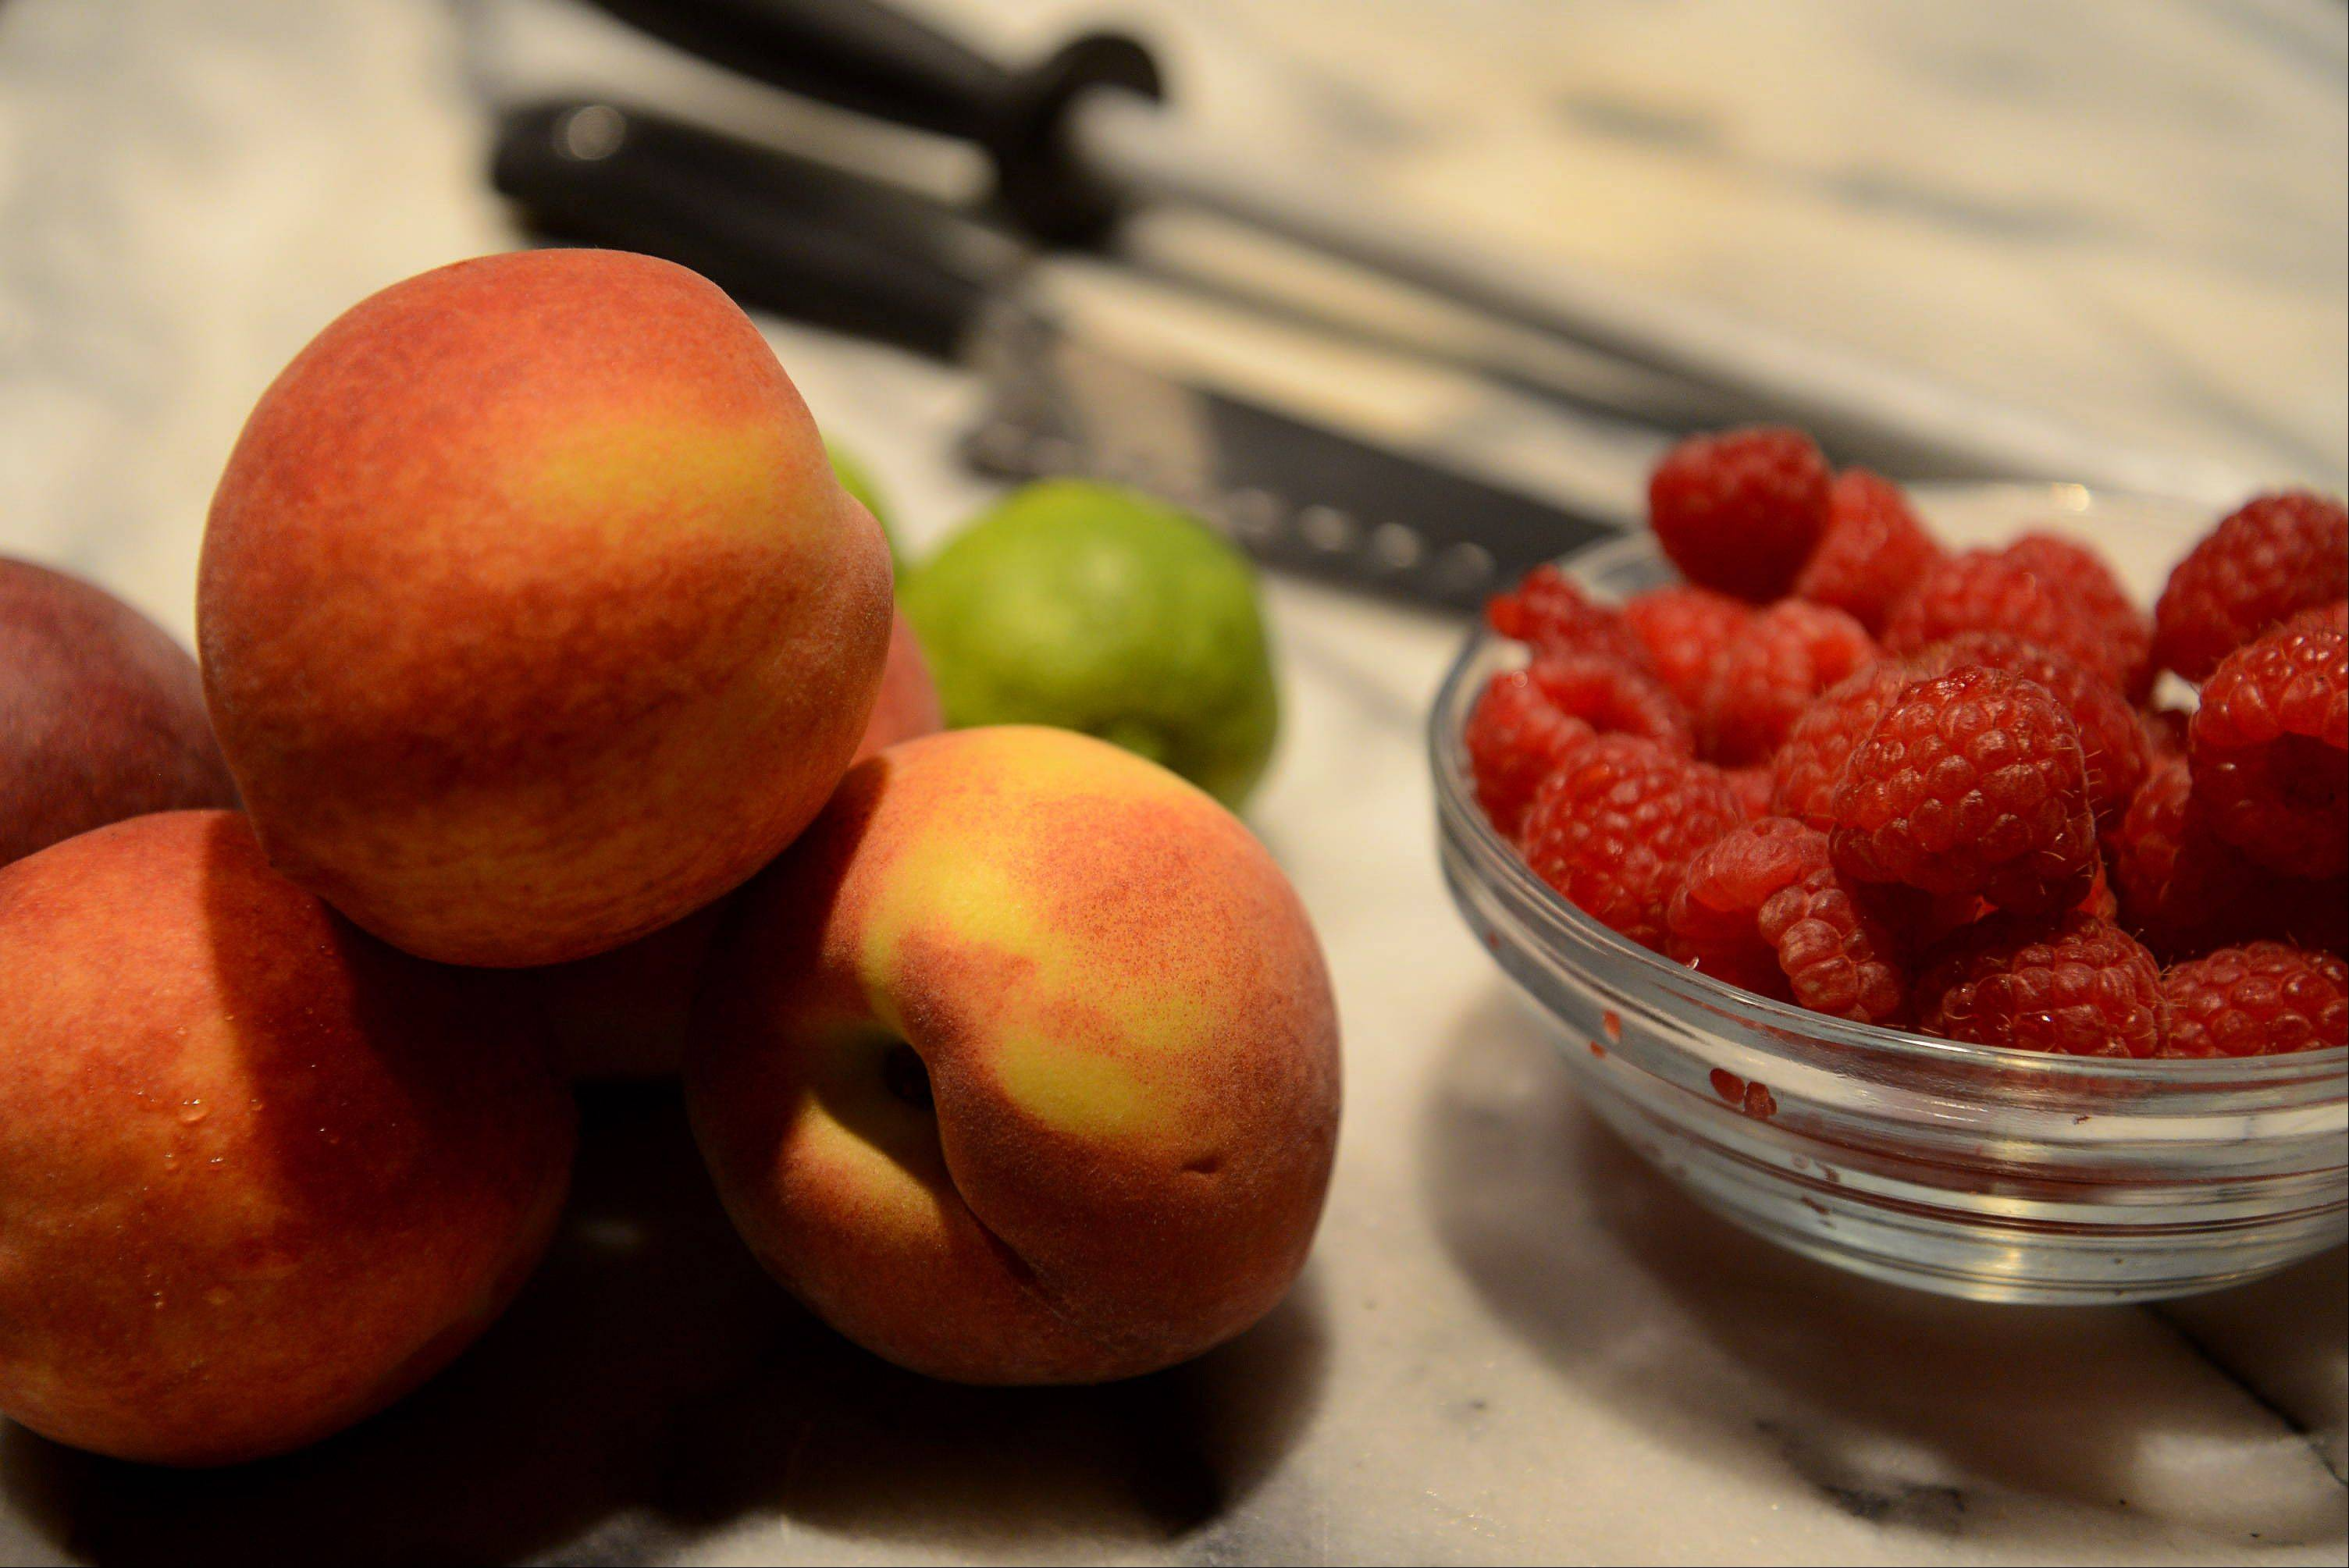 With little effort fresh raspberries and peaches turn into an iconic dessert, Peach Melba.